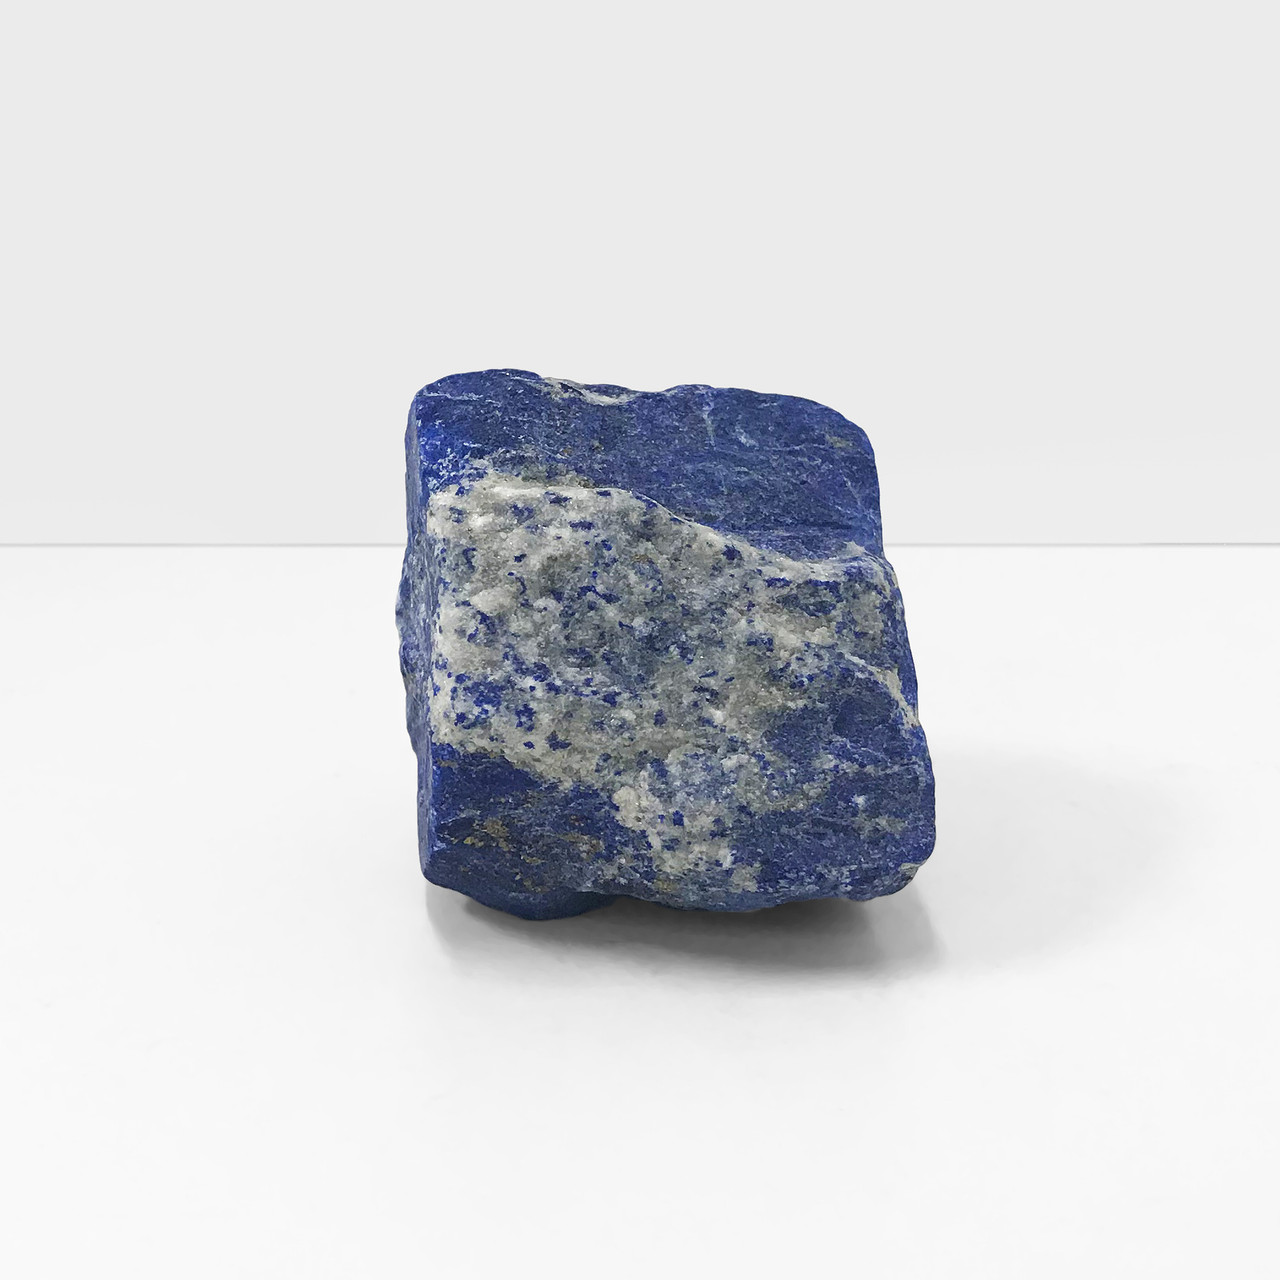 Rough Lapis Lazuli from Afghanistan